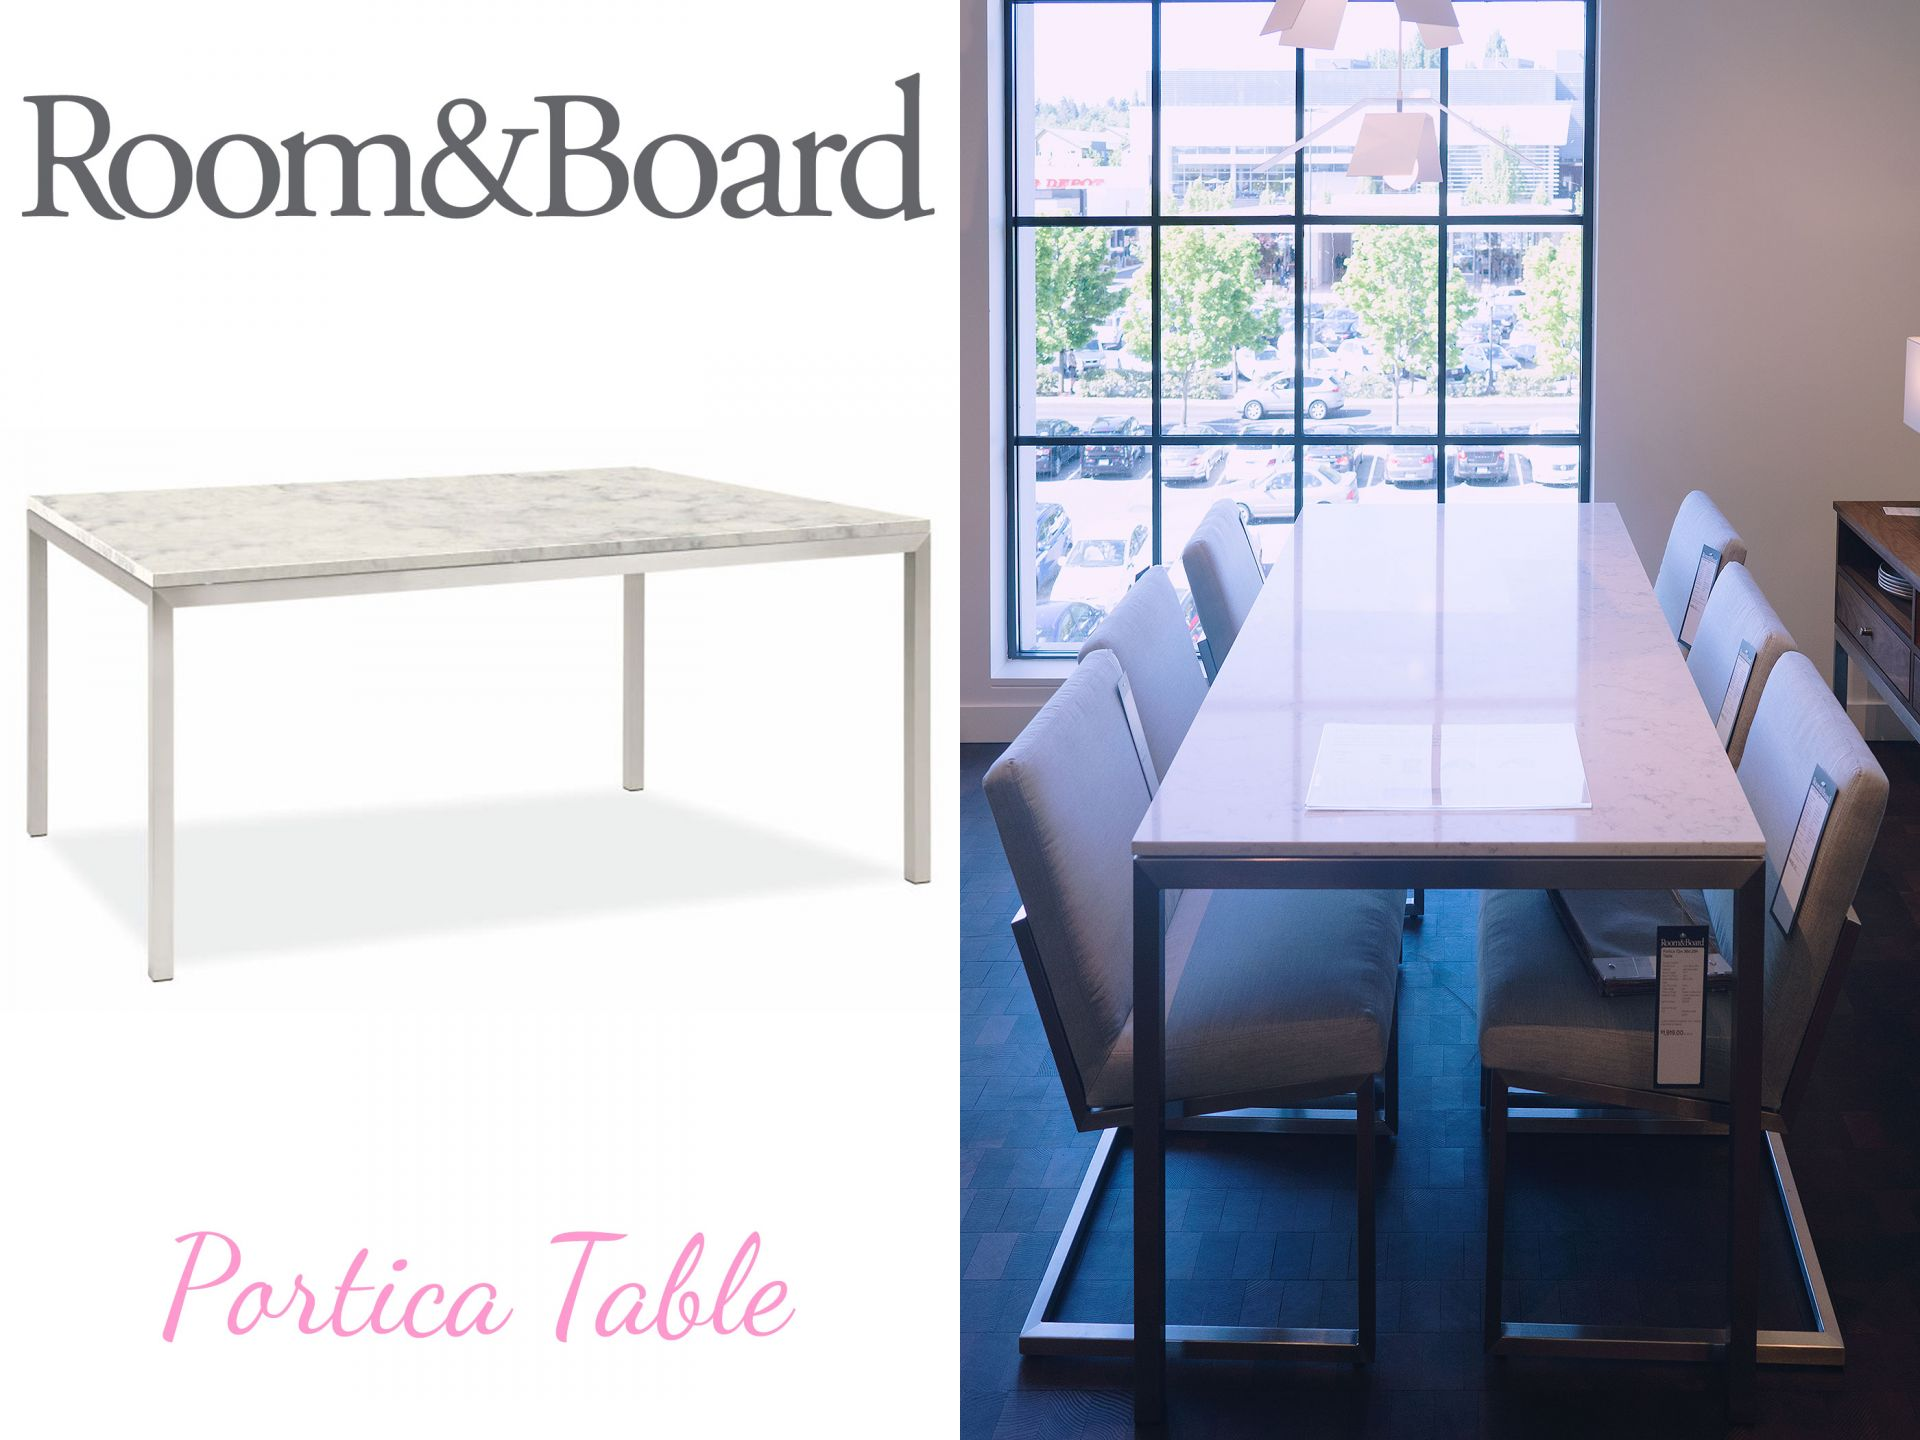 Room and Board Portica Dining Table